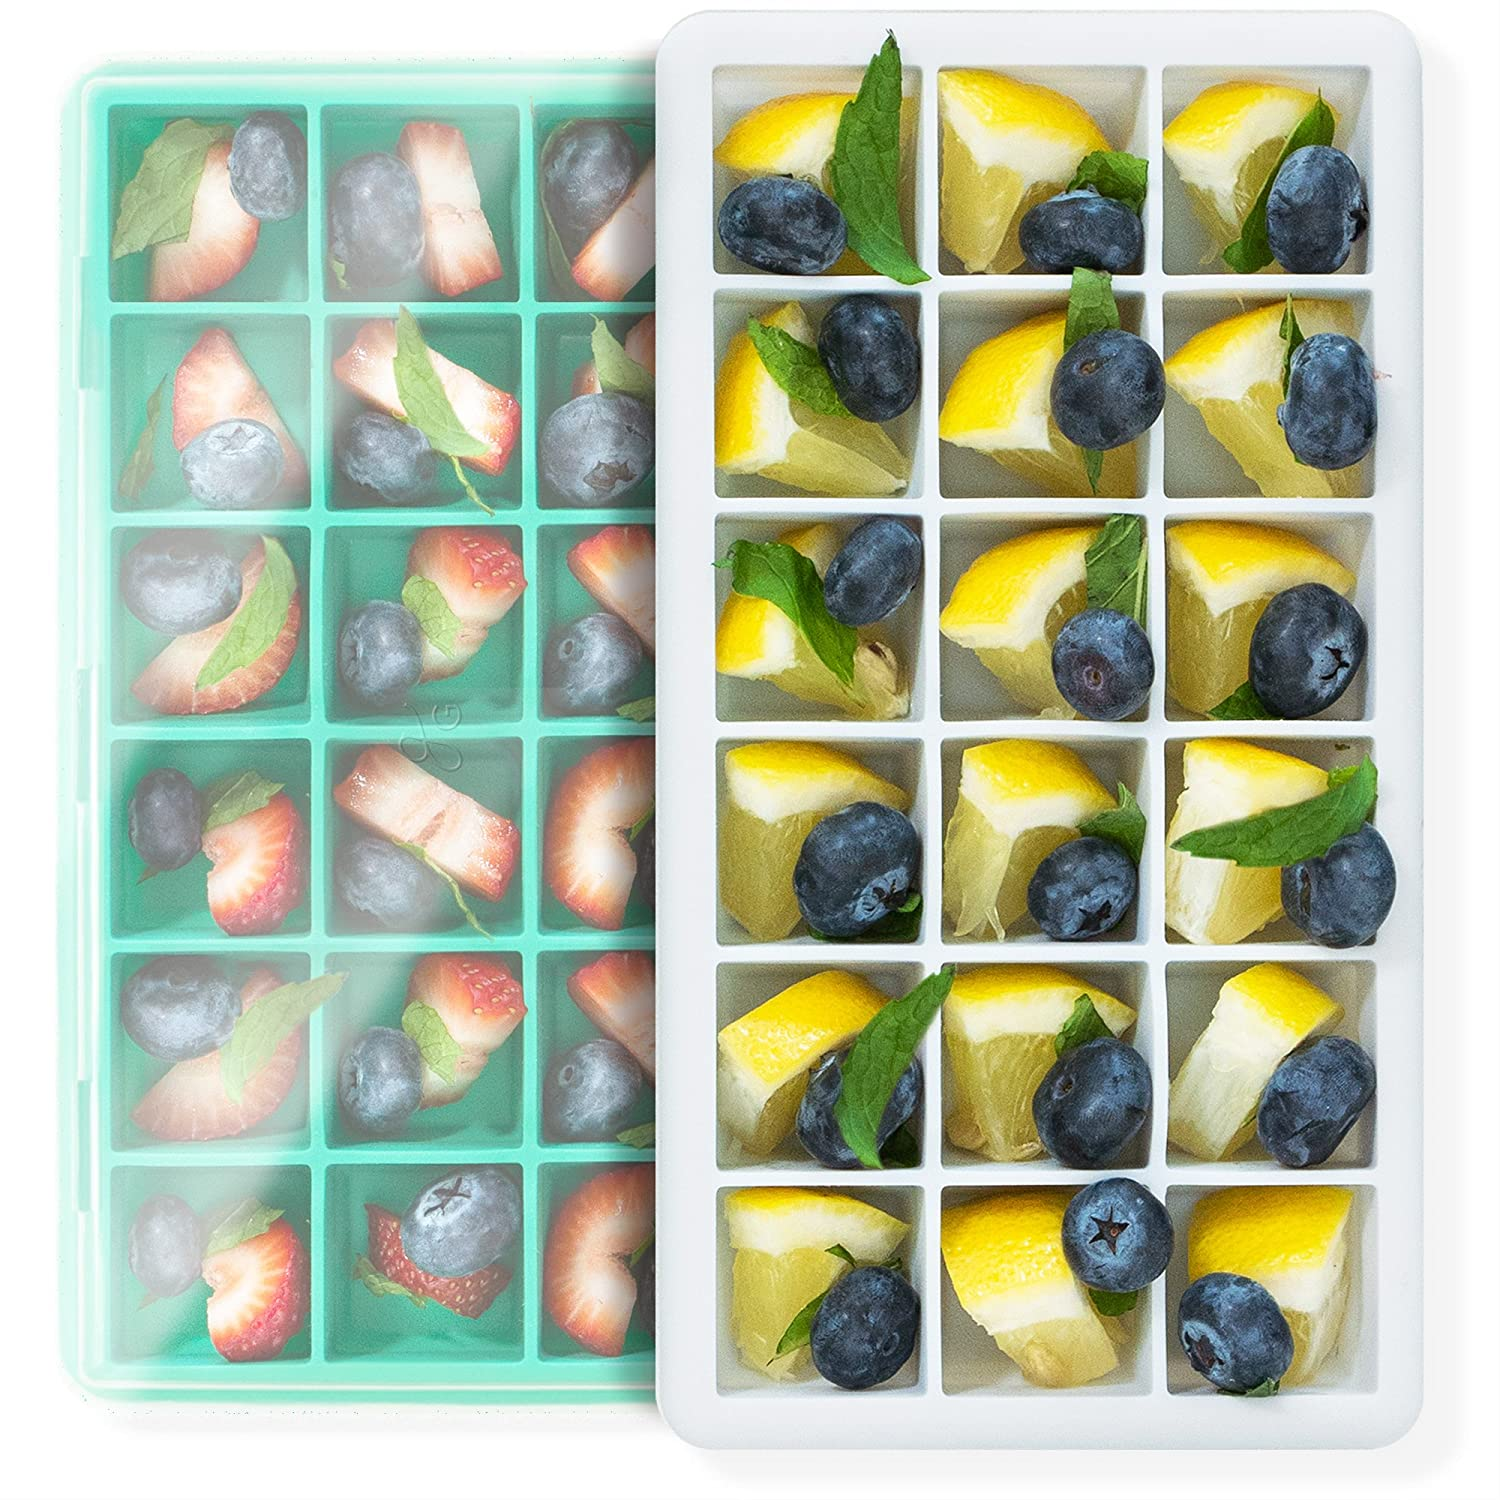 GreaterGoods Silicone Ice Cube Tray Molds, 8 Inch 2-Pack, Easy-Release Silicone, 18-Ice Cube, Spill-Resistant Lid, BPA Free, Dishwasher Safe (Grey Green)